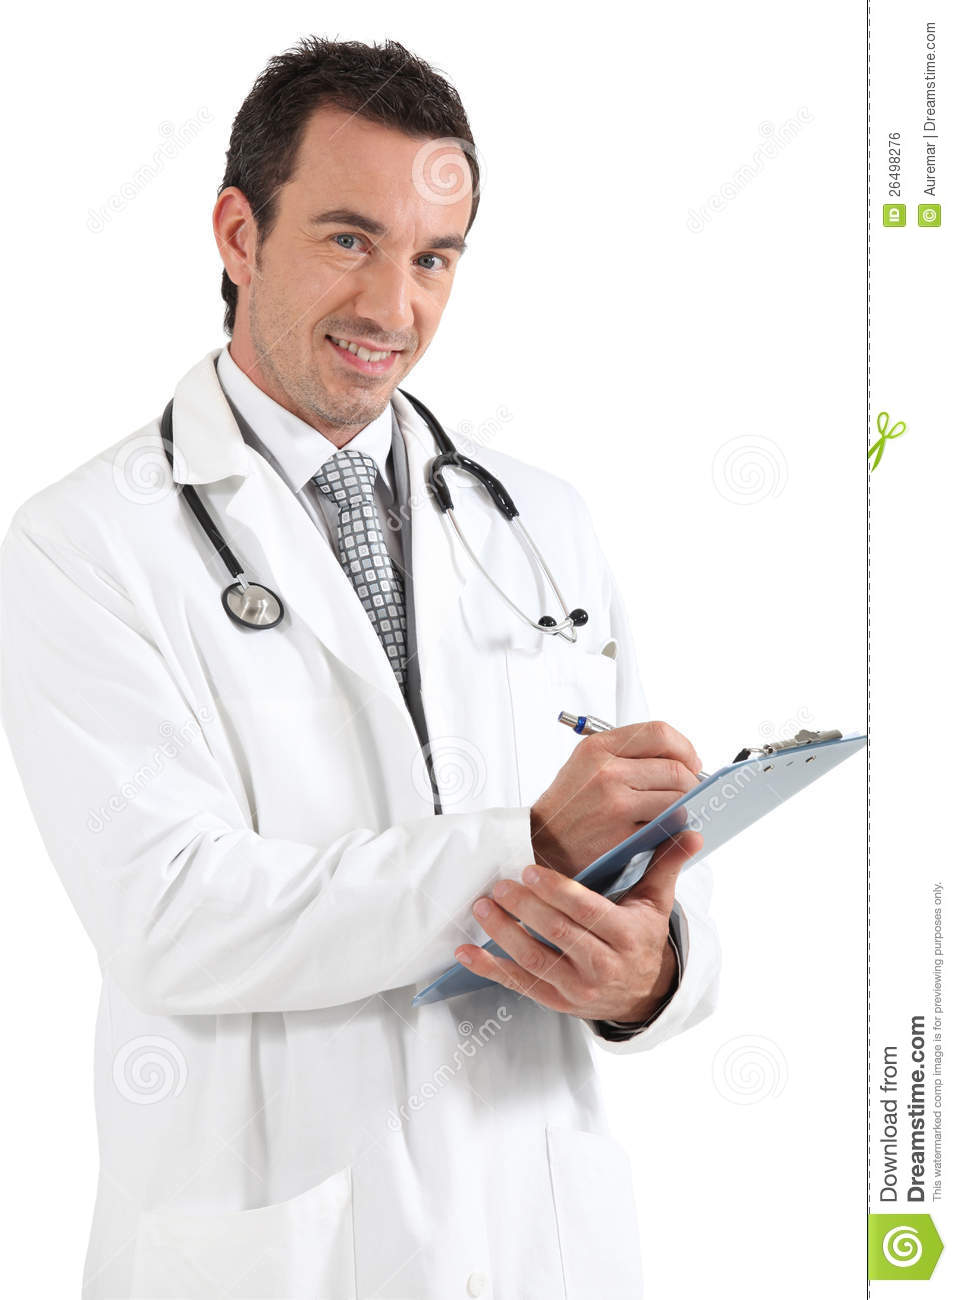 write an essay about doctor In my essays, i usually described some adversity i experienced as an  the  basic advice for this type of essay: don't write a sob story, write a narrative of your .